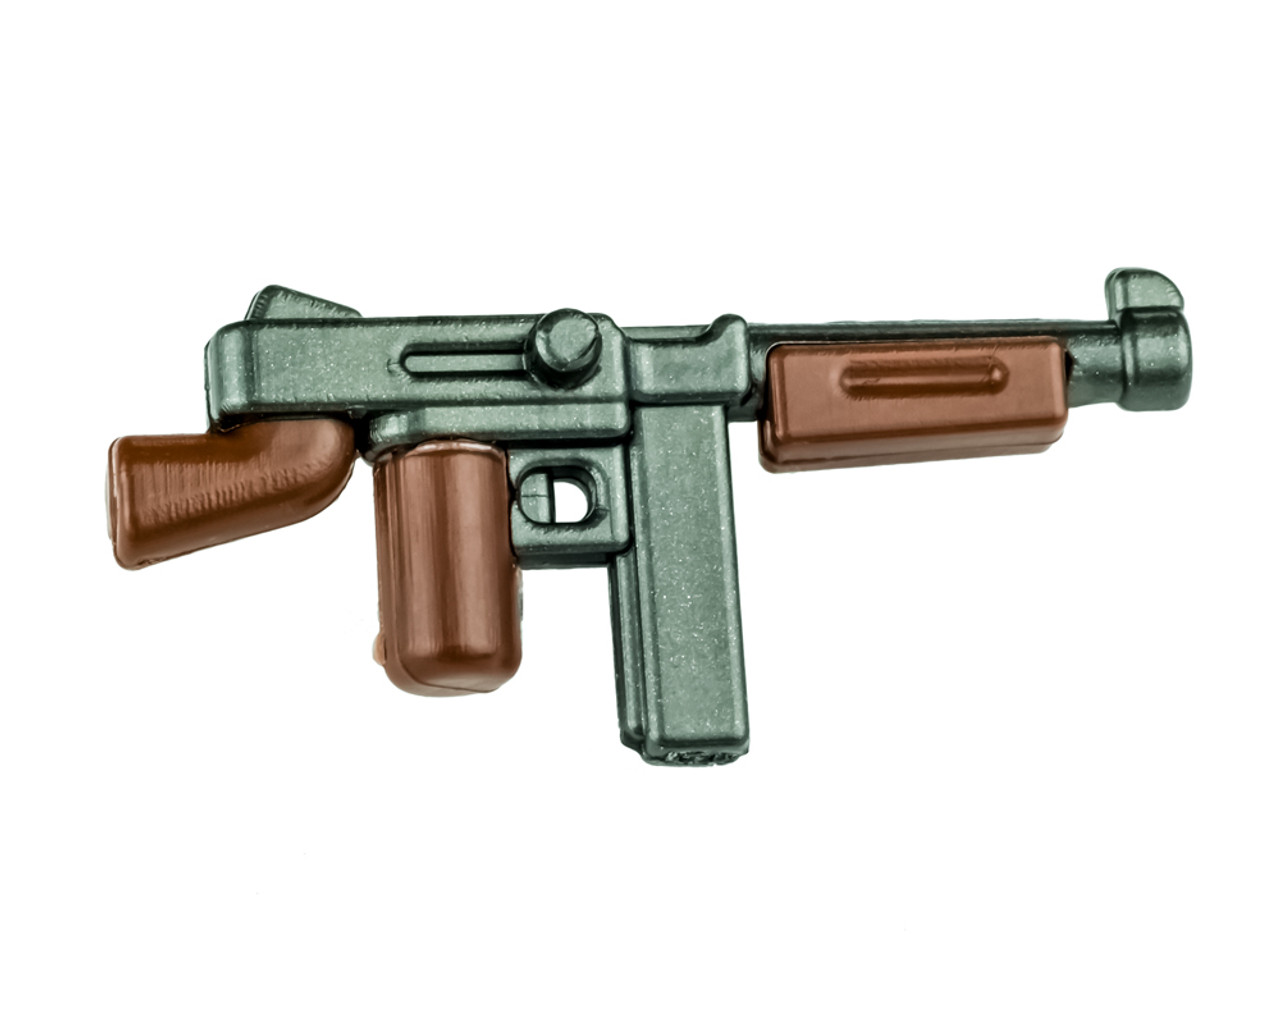 BrickArms Reloaded Overmolded M1A1 SMG